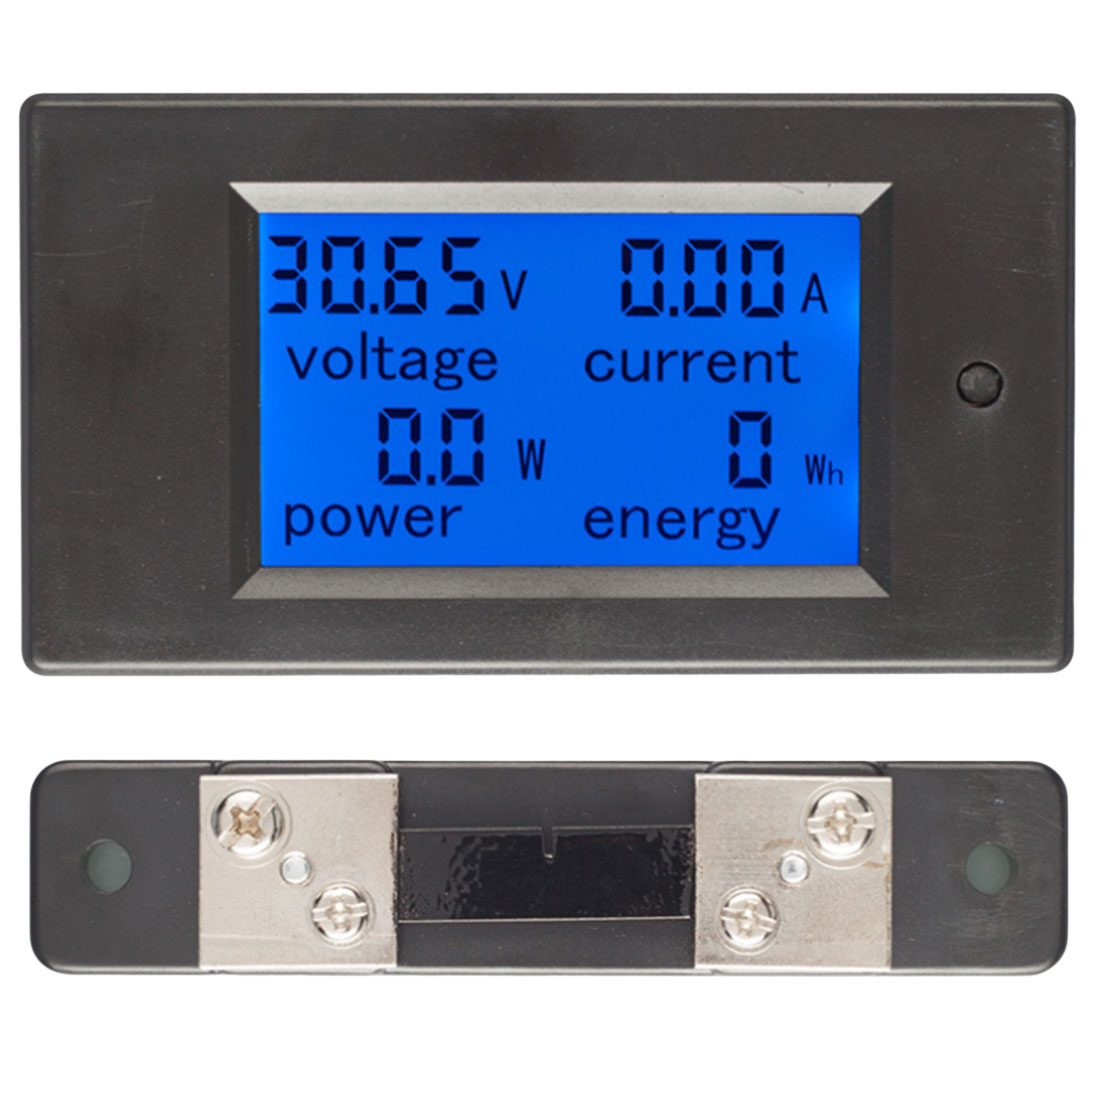 <font><b>DC</b></font> 6.5-<font><b>100V</b></font> <font><b>50A</b></font> 4 IN1 Digital <font><b>Voltmeter</b></font> <font><b>Ammeter</b></font> LCD <font><b>DC</b></font> Voltage Current Power Energy Meter Tester with <font><b>DC</b></font> 100A/75mV Shunt image